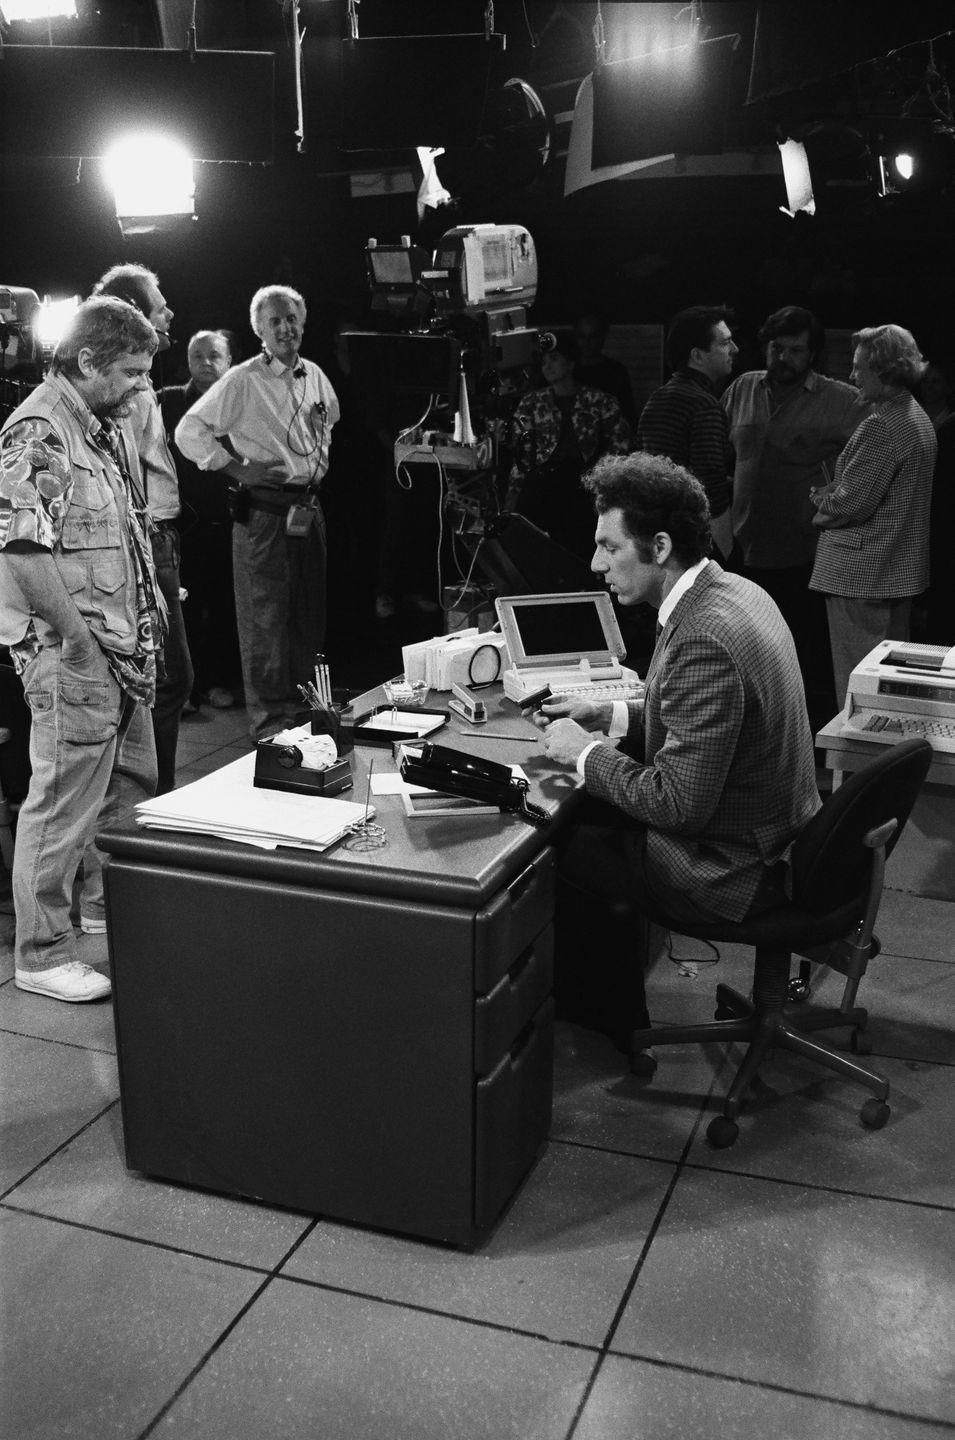 <p>Richards is seen preparing for a scene in an office setting where Kramer will end up doing who knows what. </p>